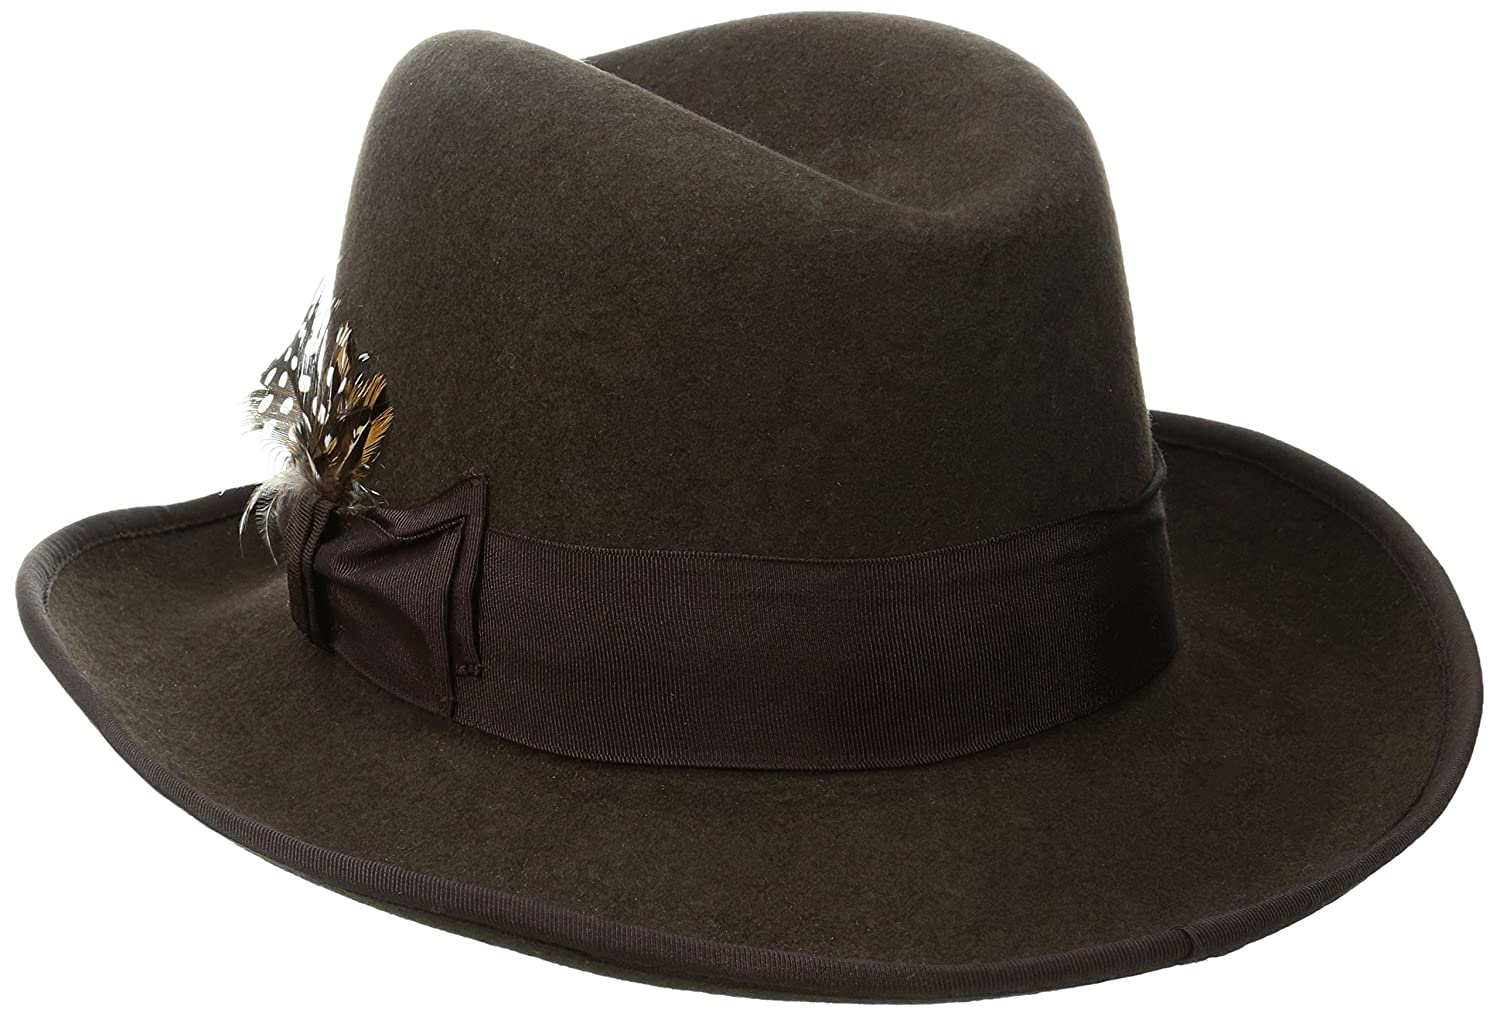 5e73d359464bf Stacy Adams Men s Homburg at Amazon Men s Clothing store  Homburg Hat